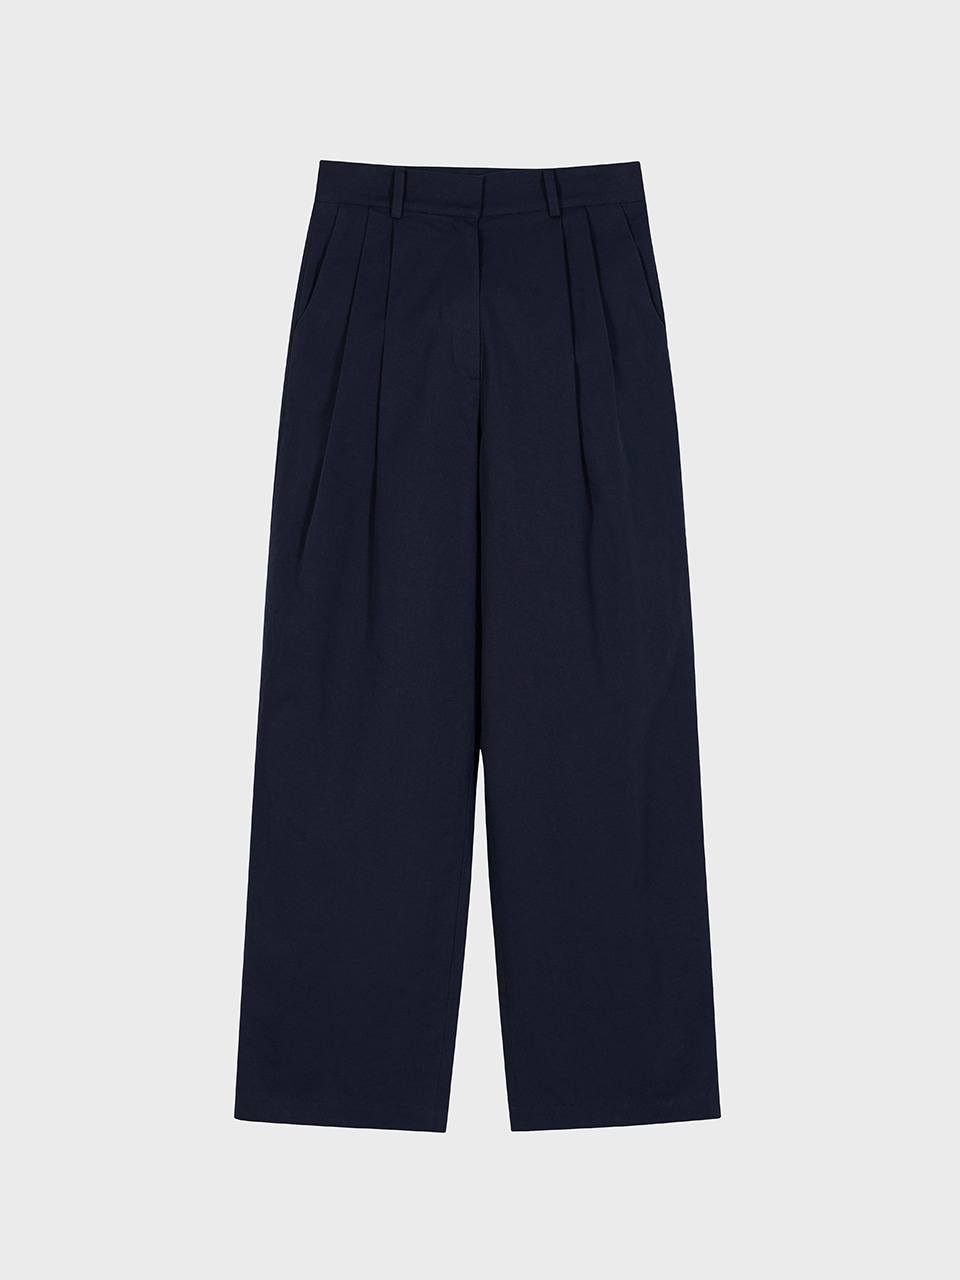 3.41 COTTON TROUSERS_LIGHT NAVY